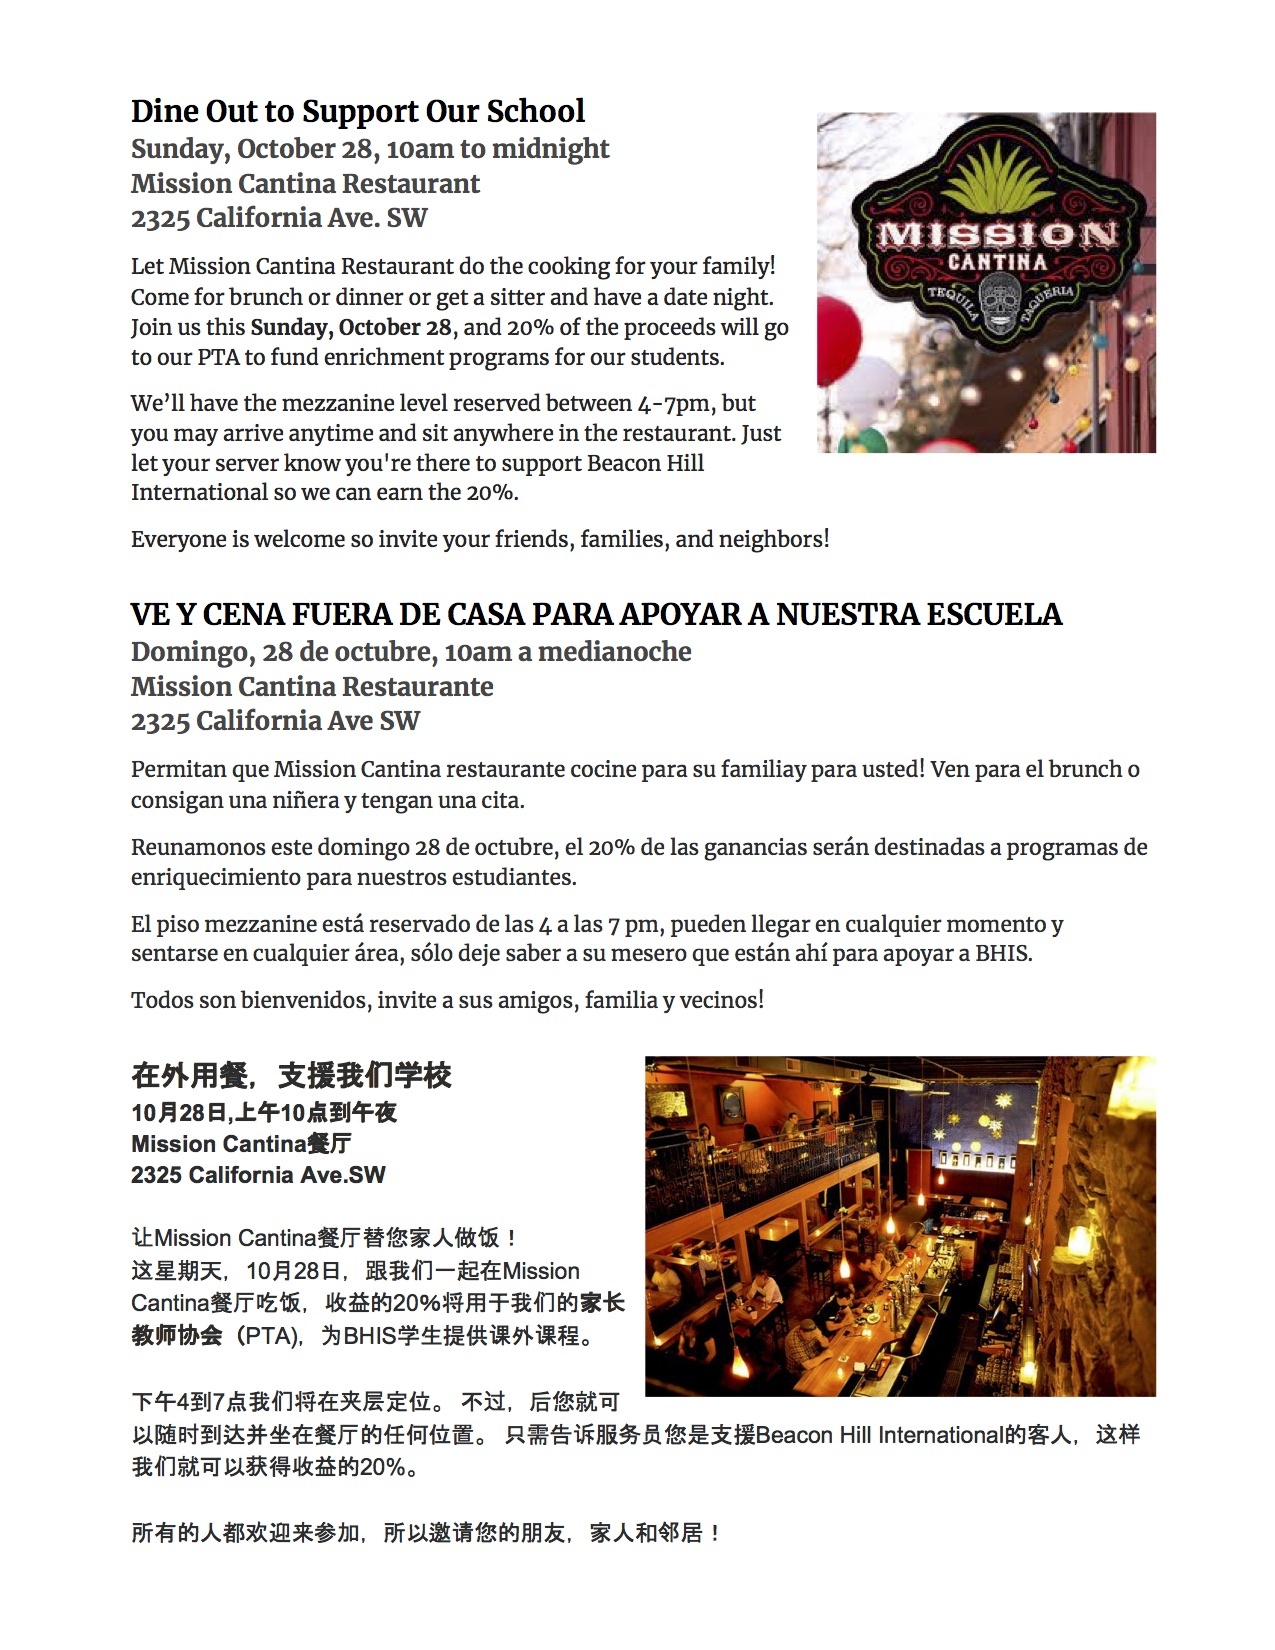 2018-19 Mission Cantina Fundraiser Flyer